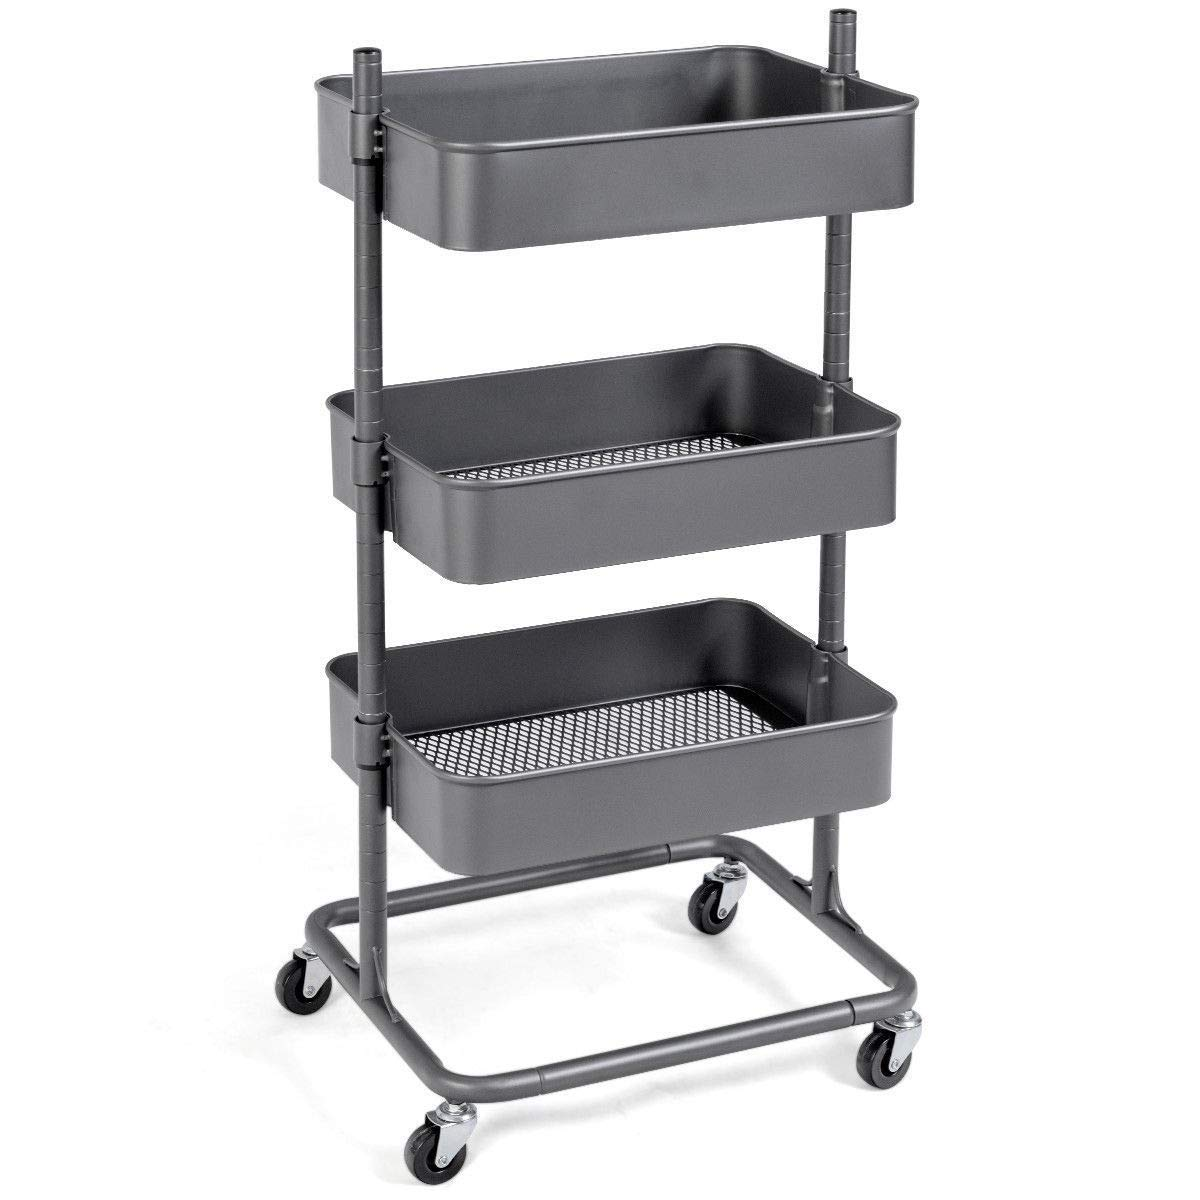 GHP 15.5''x18''x35'' 165-Lbs Capacity Steel 3-Tier Rolling Storage Cart with 4 Casters